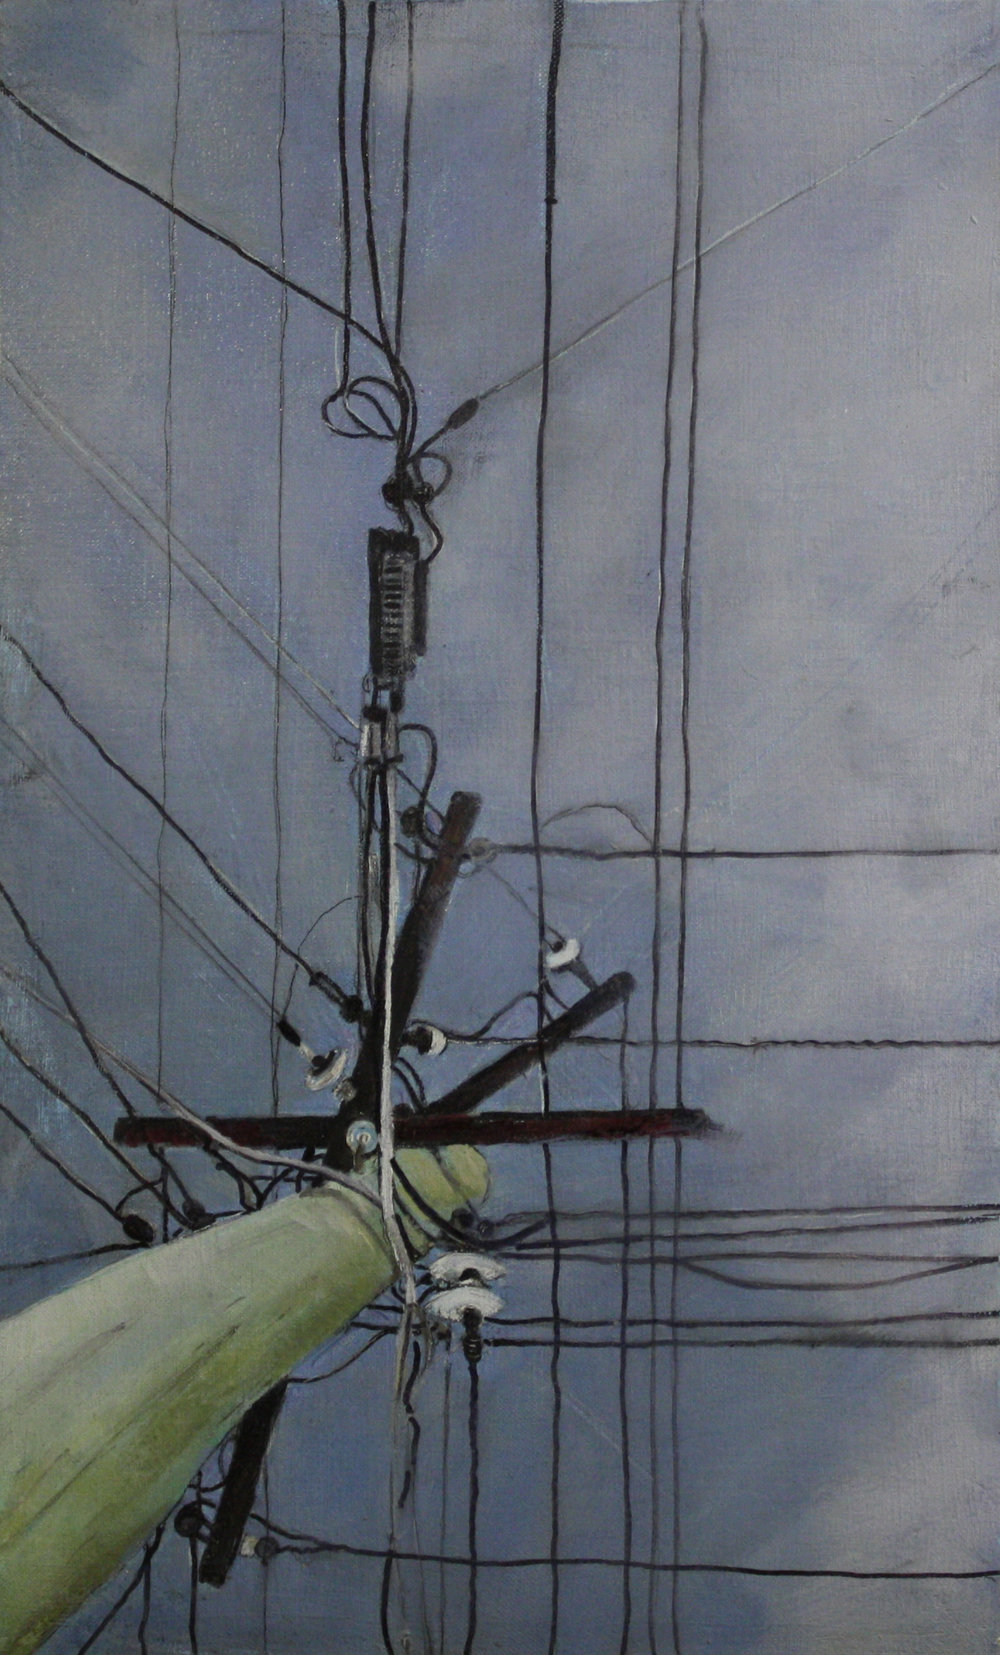 Looking Up: 4 1872   2011, oil on canvas  50 x 76 cm